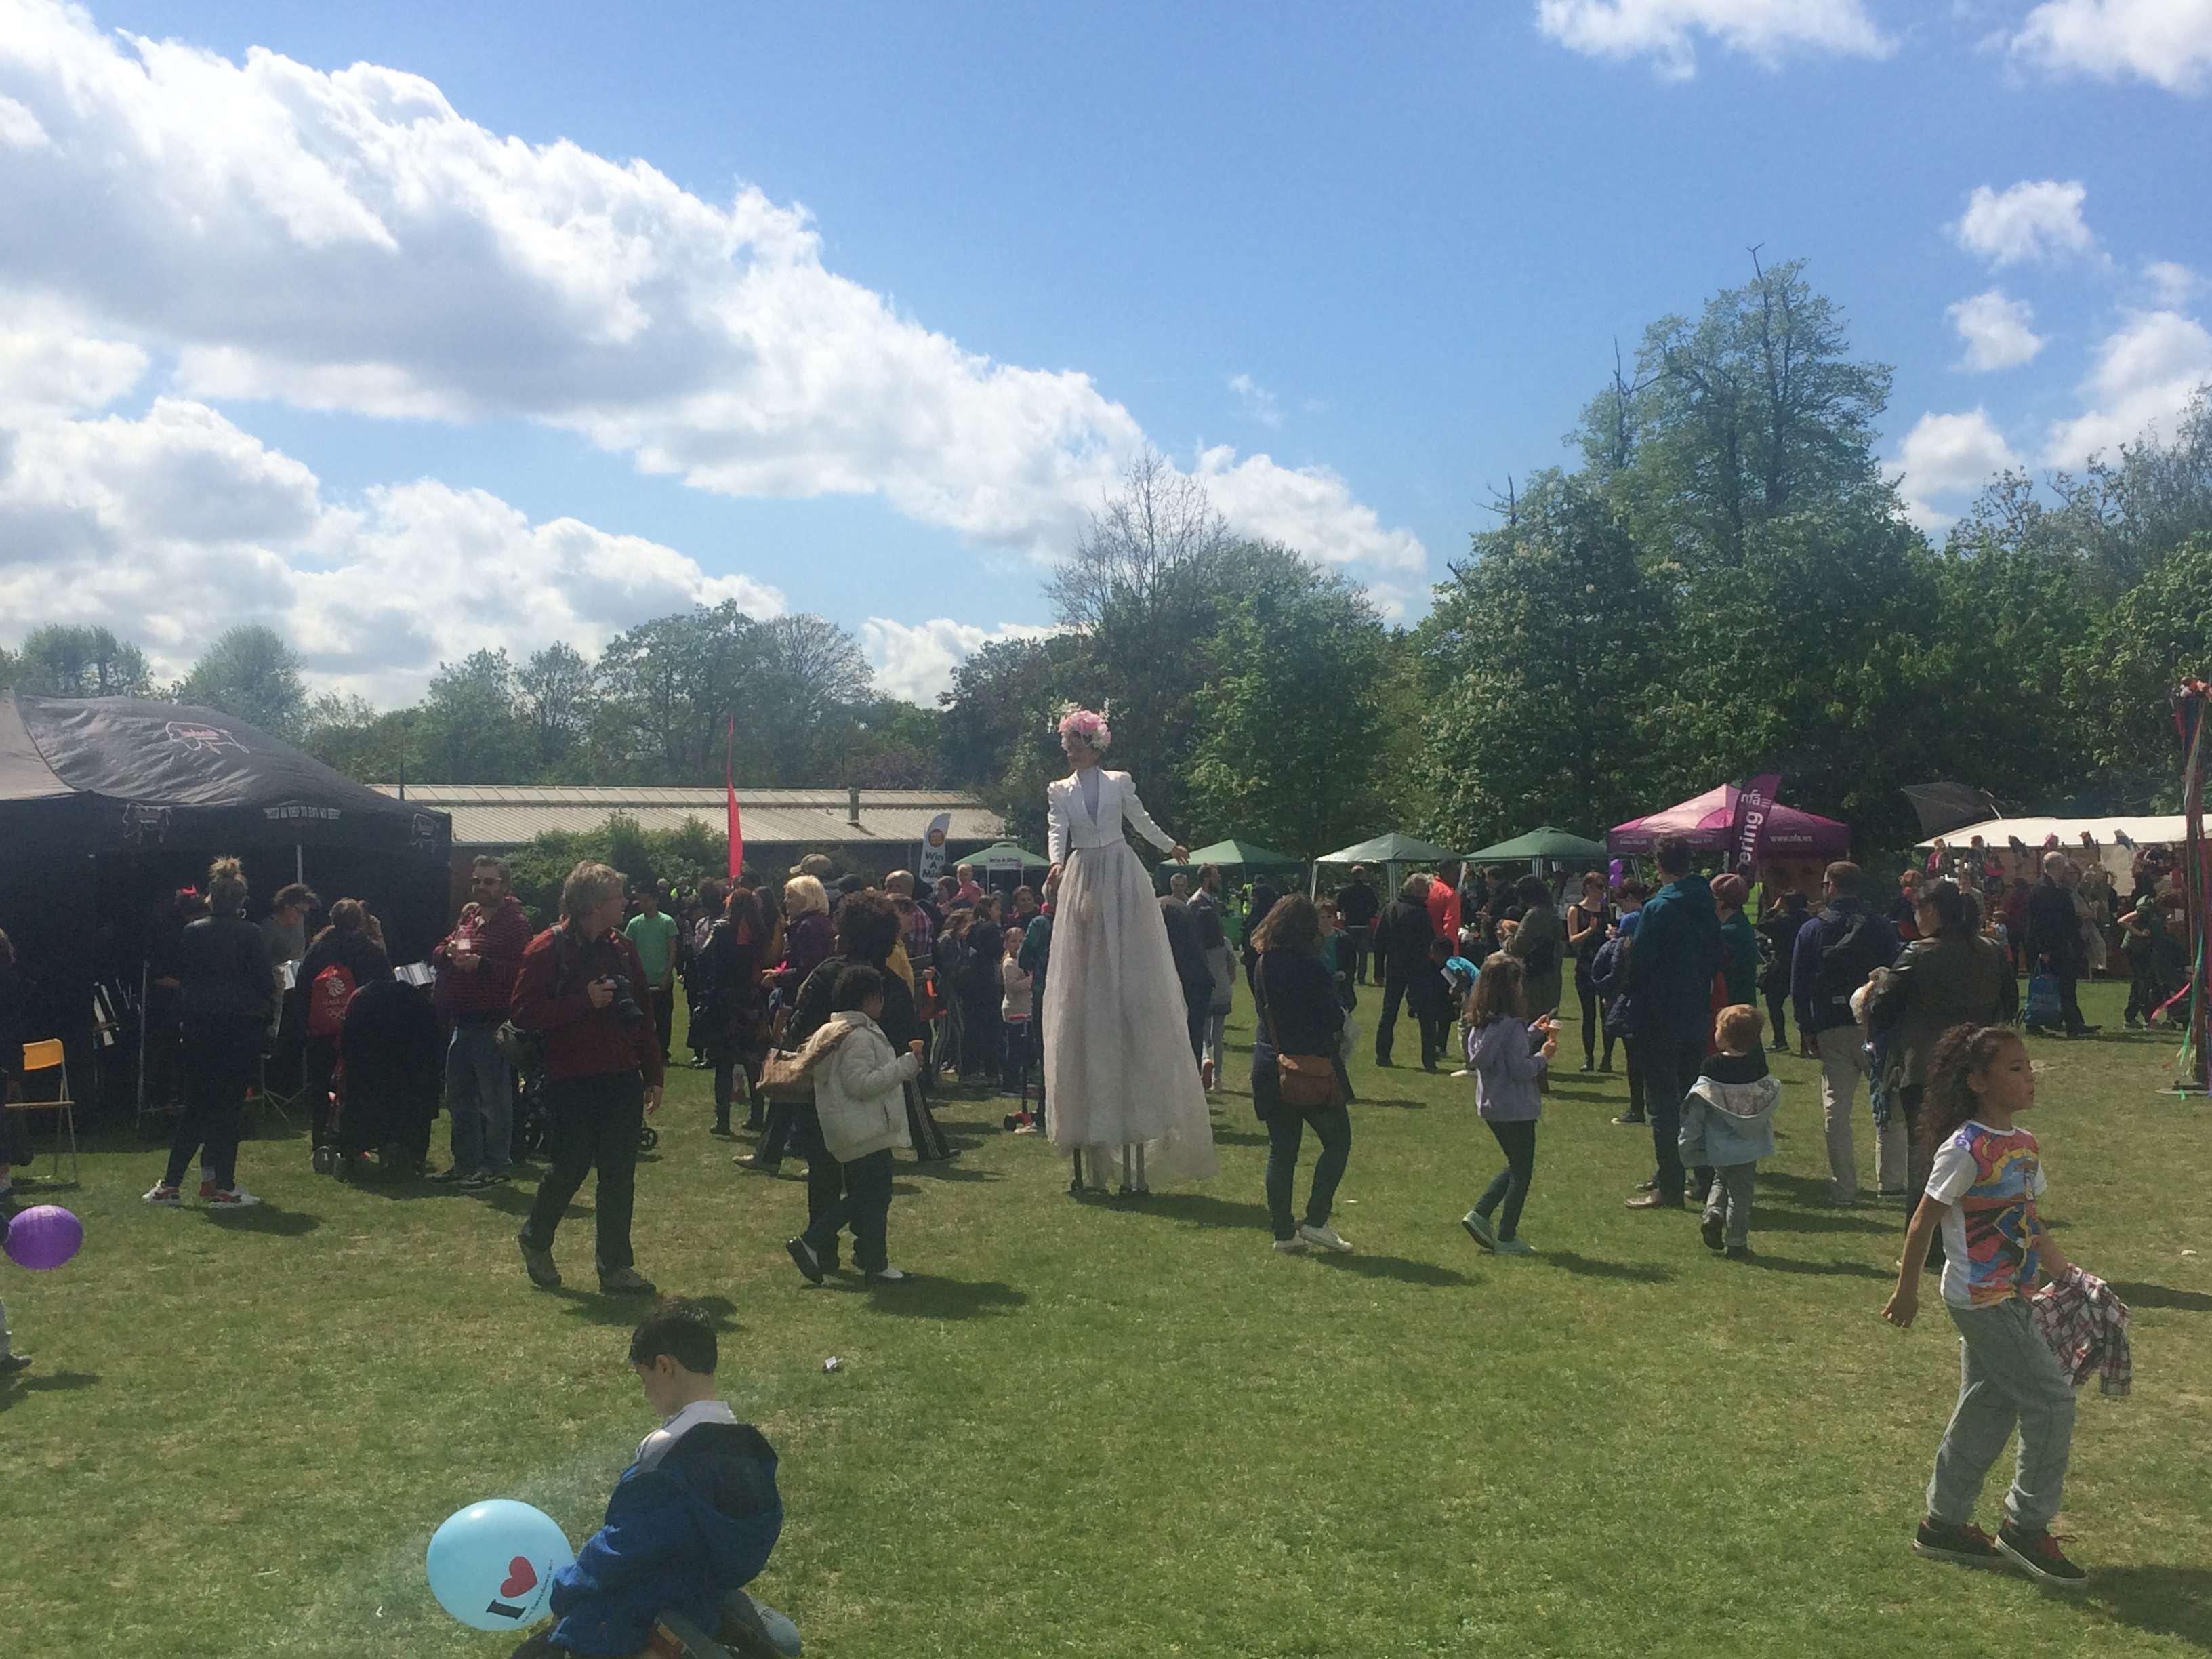 Crazy white dress lady on stilts in Tooting Bec, summer 2015